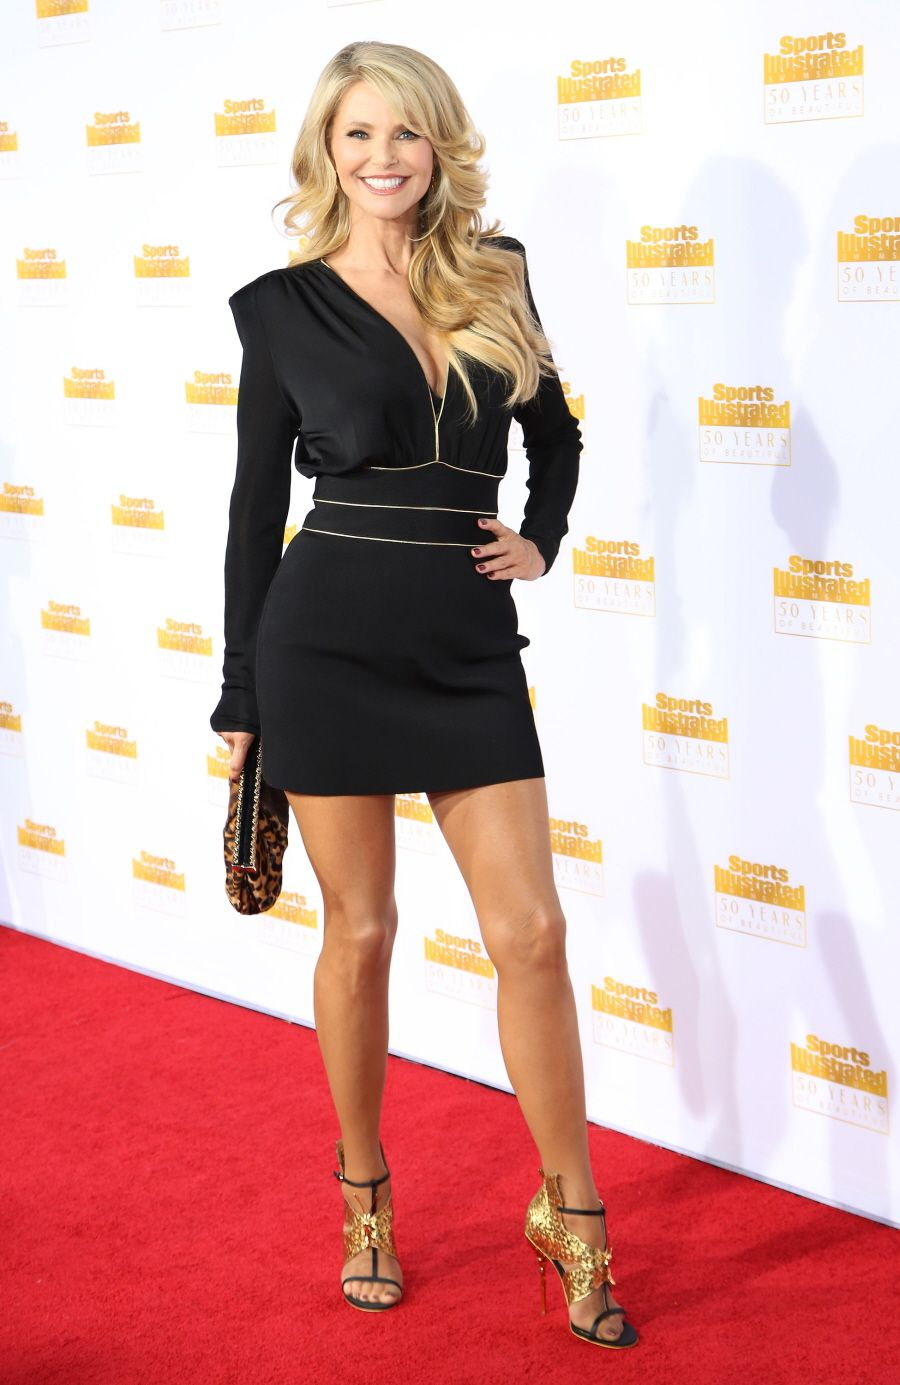 Christie Brinkley is a goddess!! 59 years old..wow!!